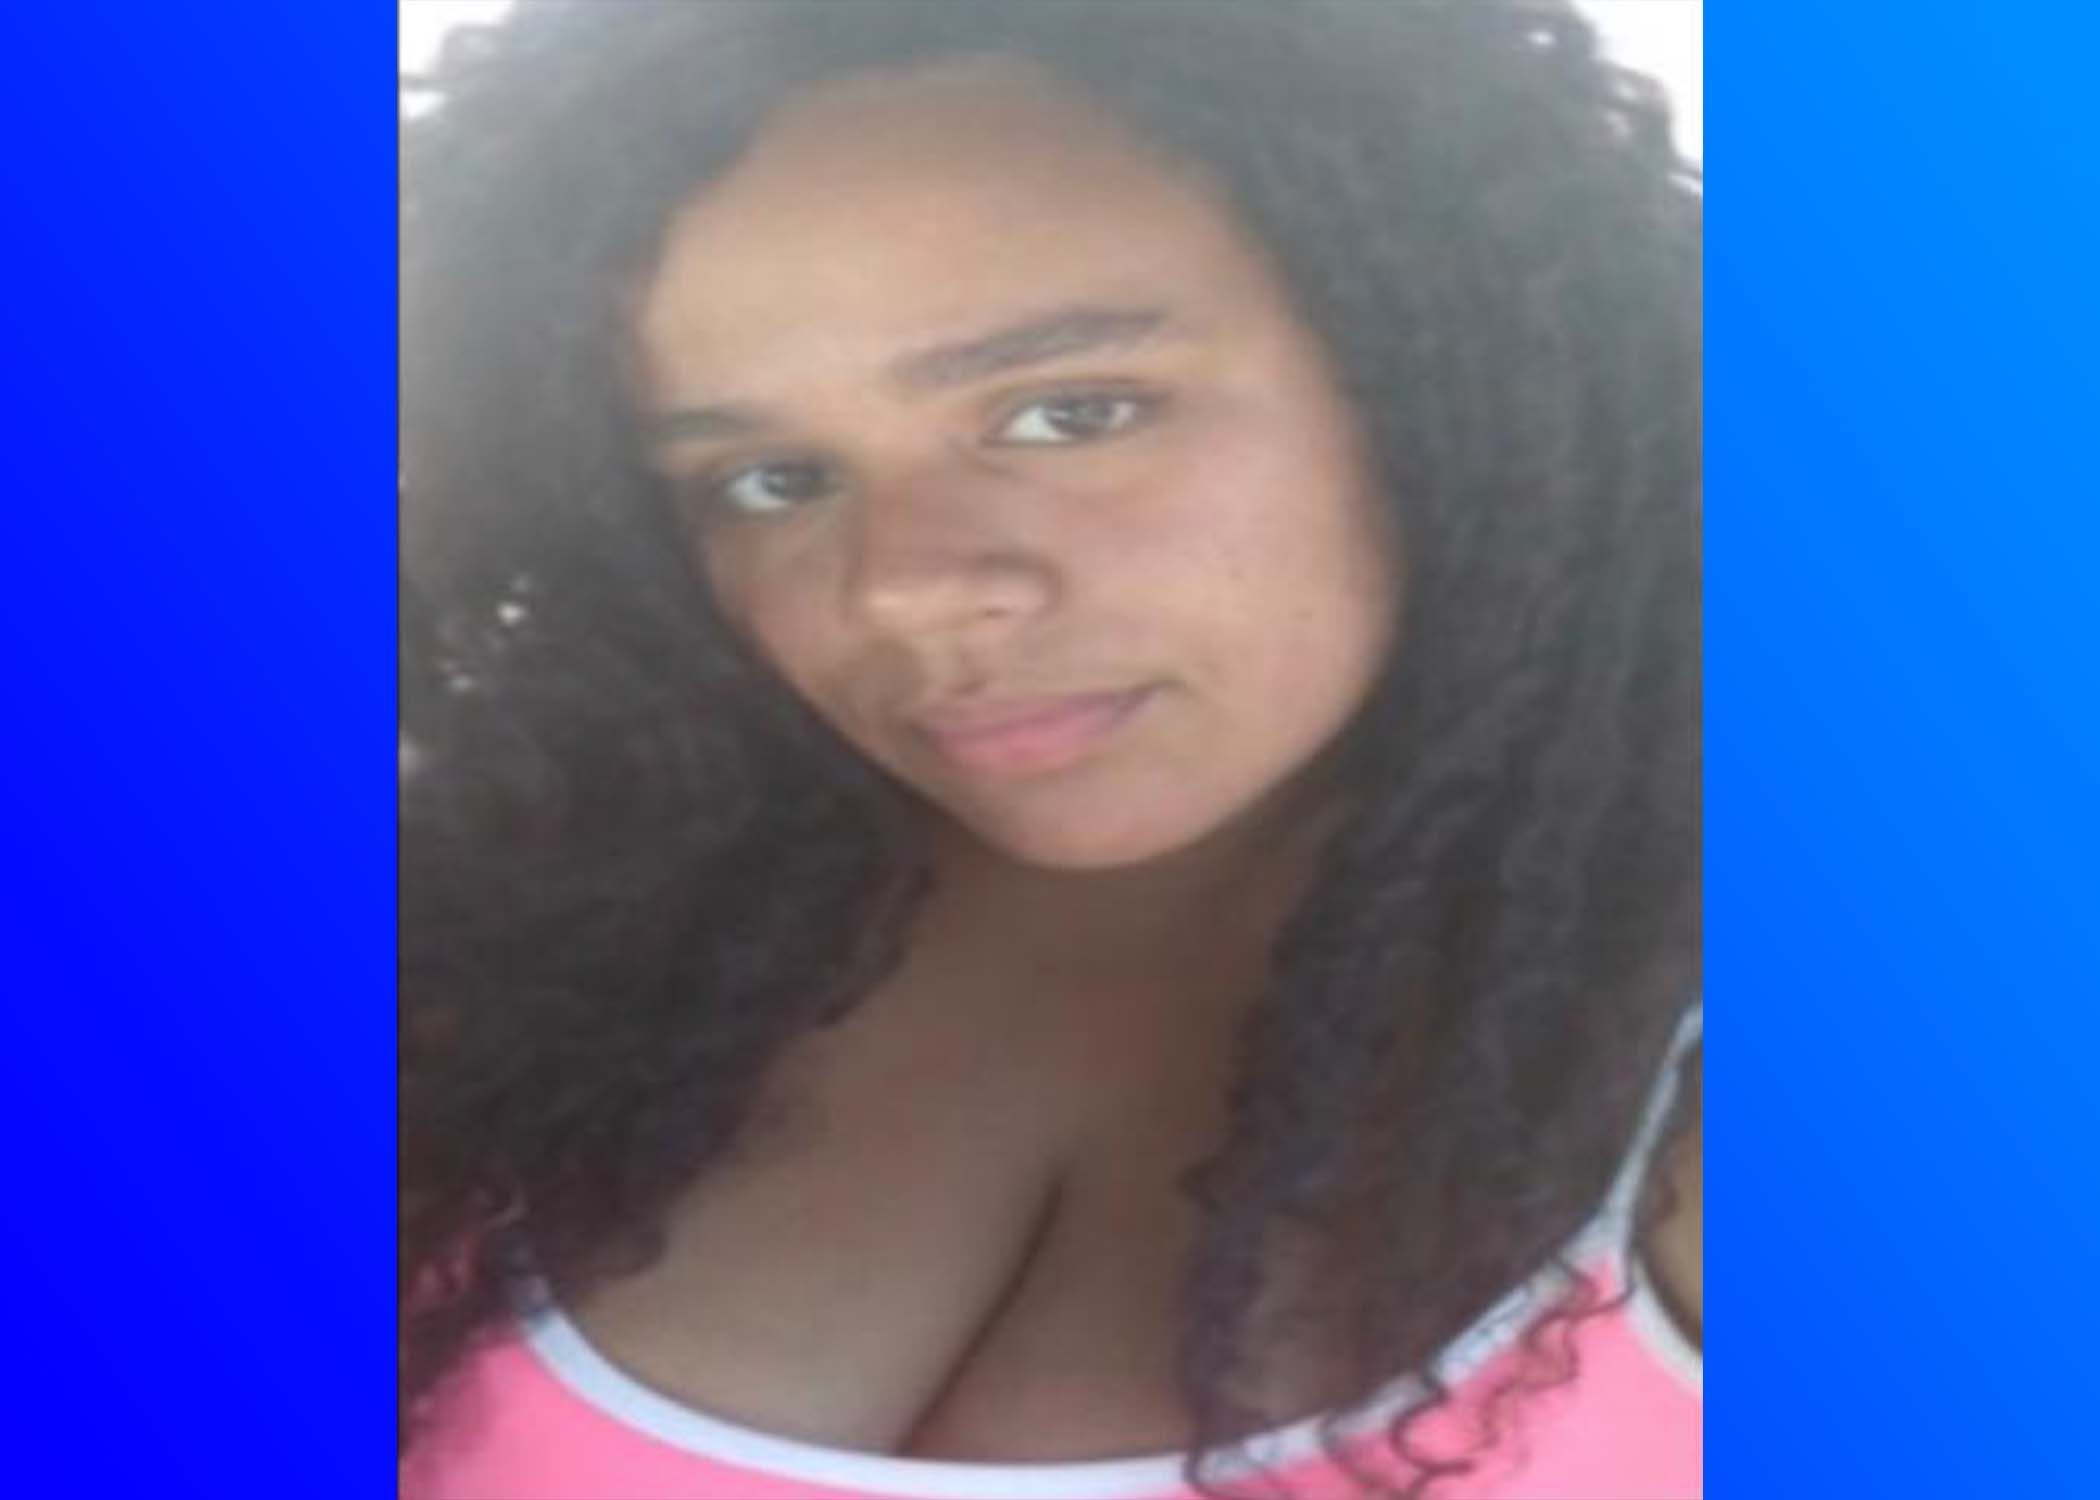 Birmingham Police Department request public assistance in locating critical missing person